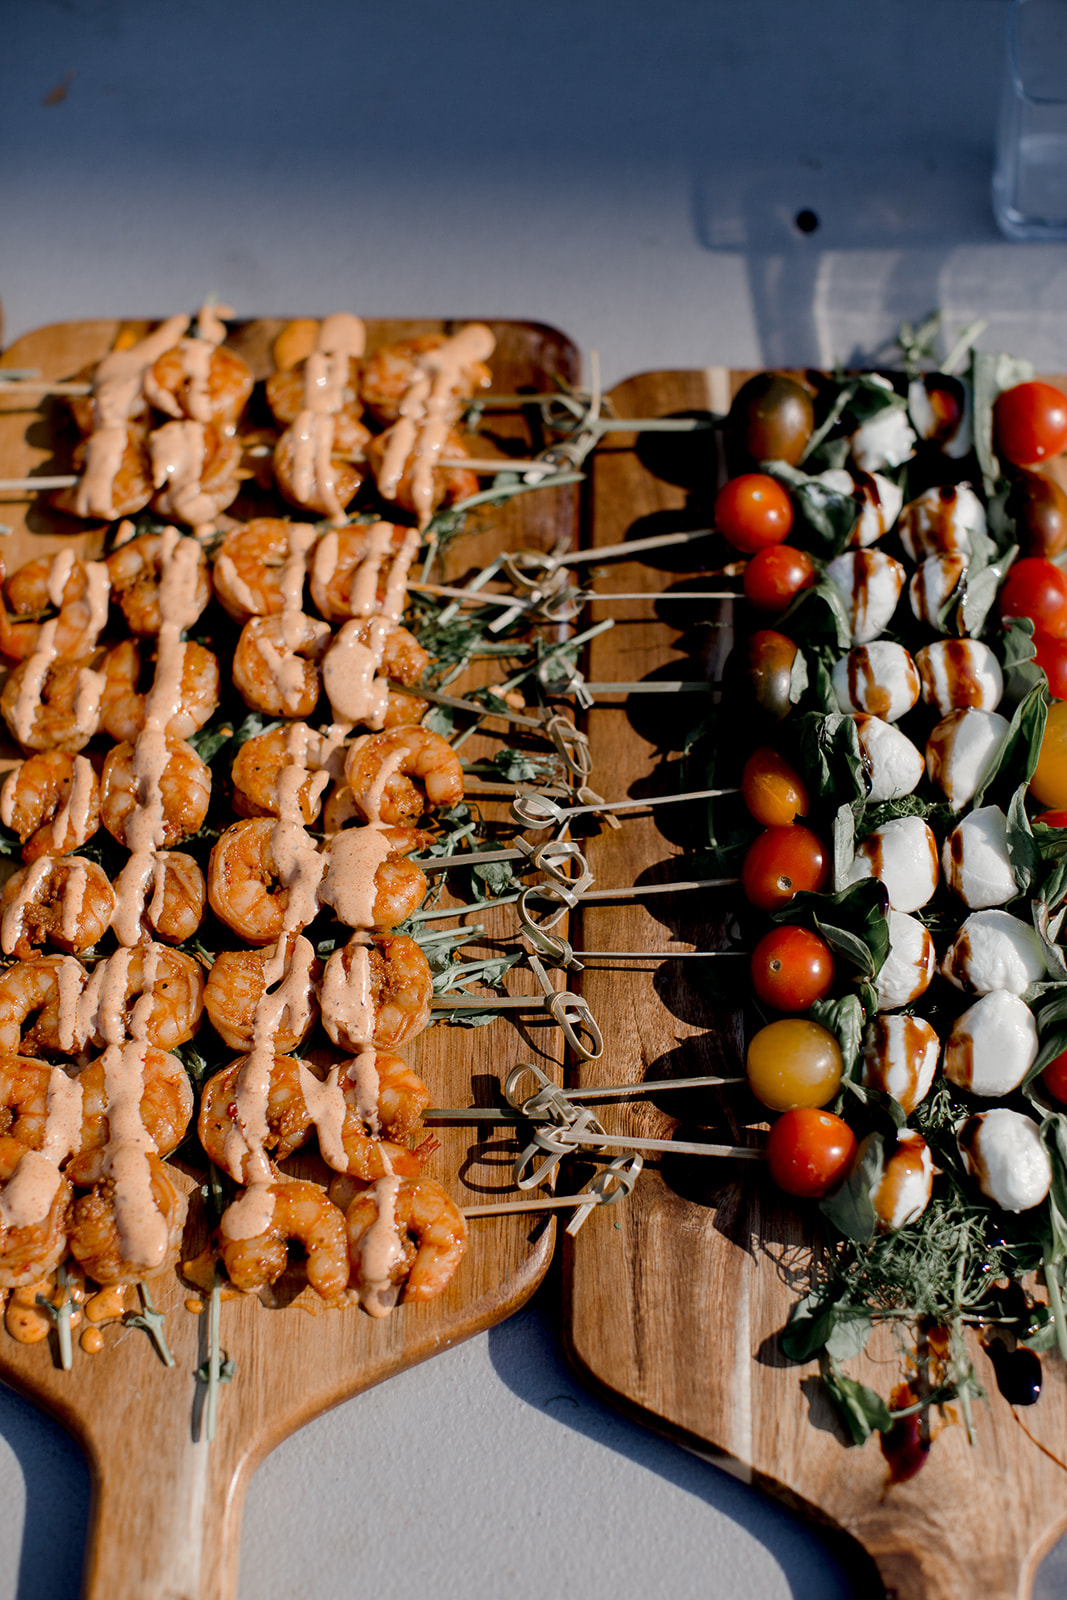 barn-wedding-appetizers.jpg